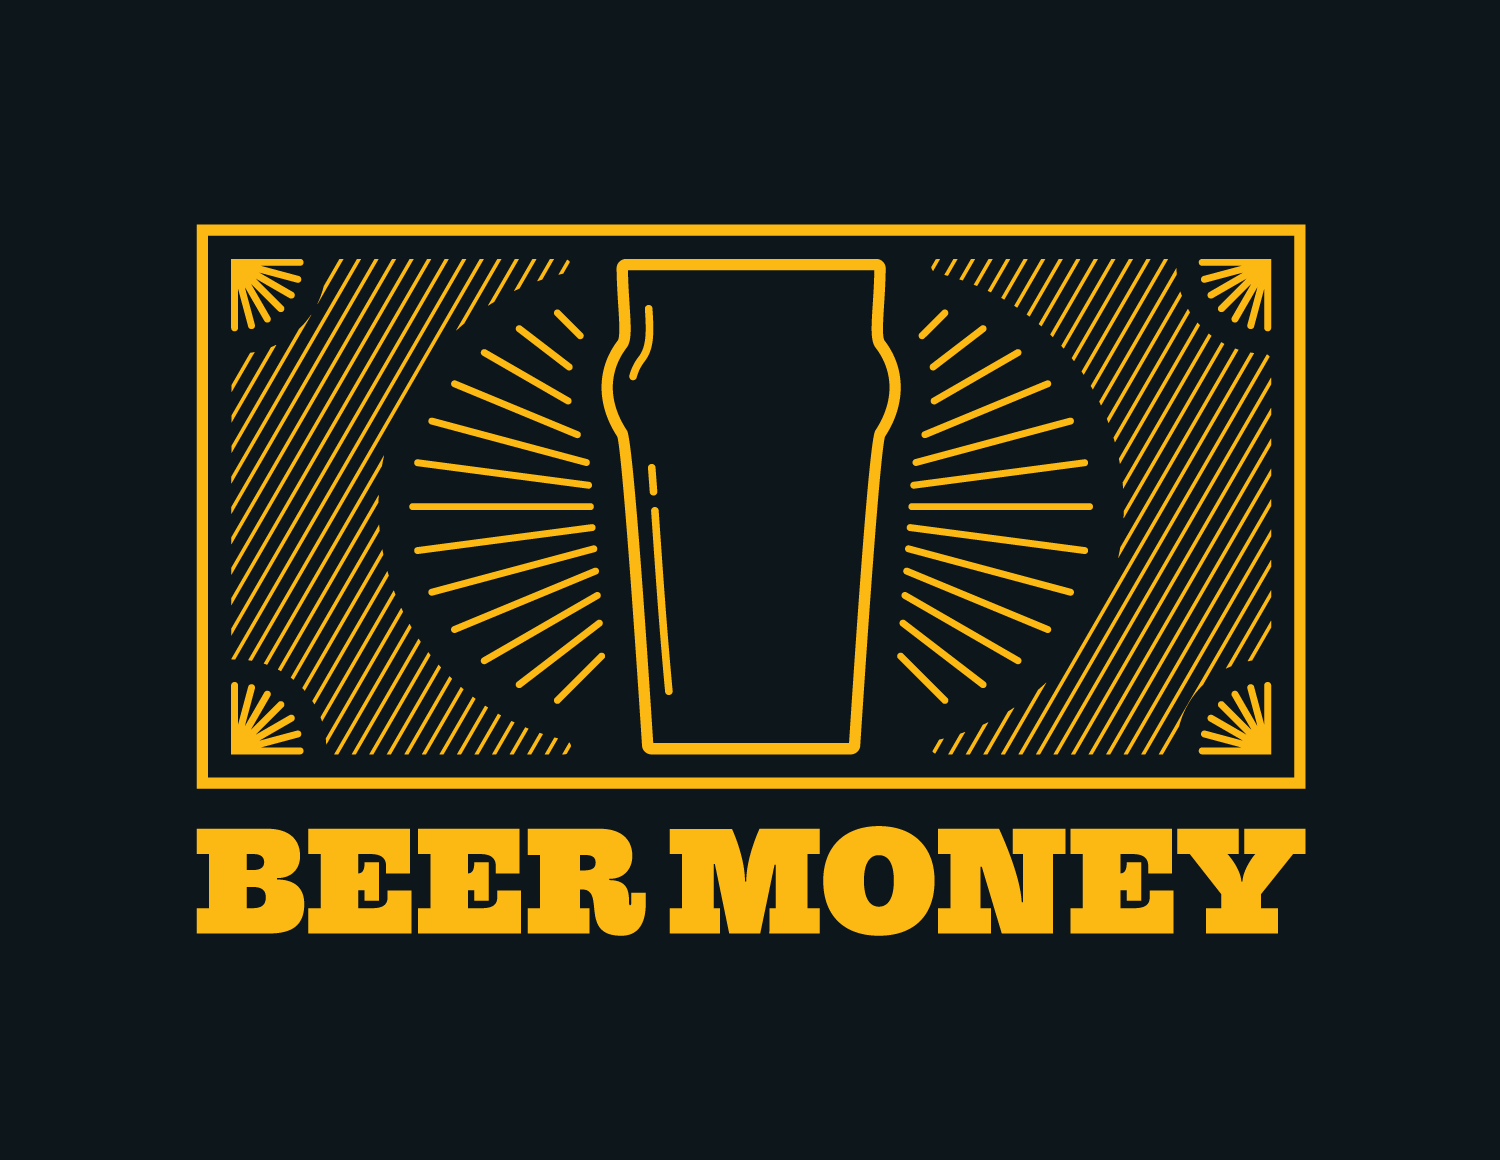 Beer Money  Charity event t-shirt